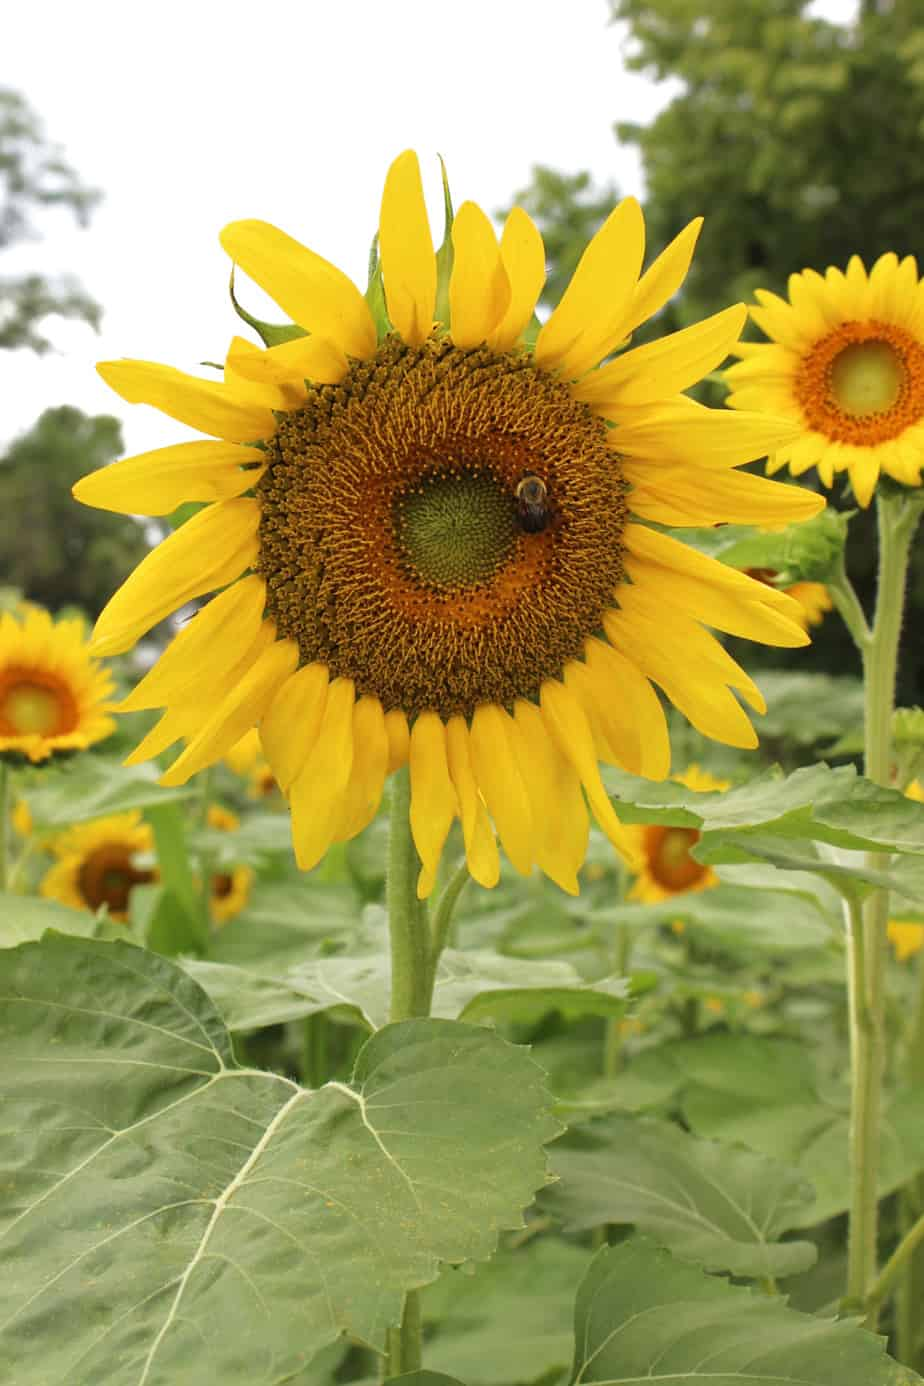 Sunflowers at Valley View Acres: Scenic Views in Middletown, Md